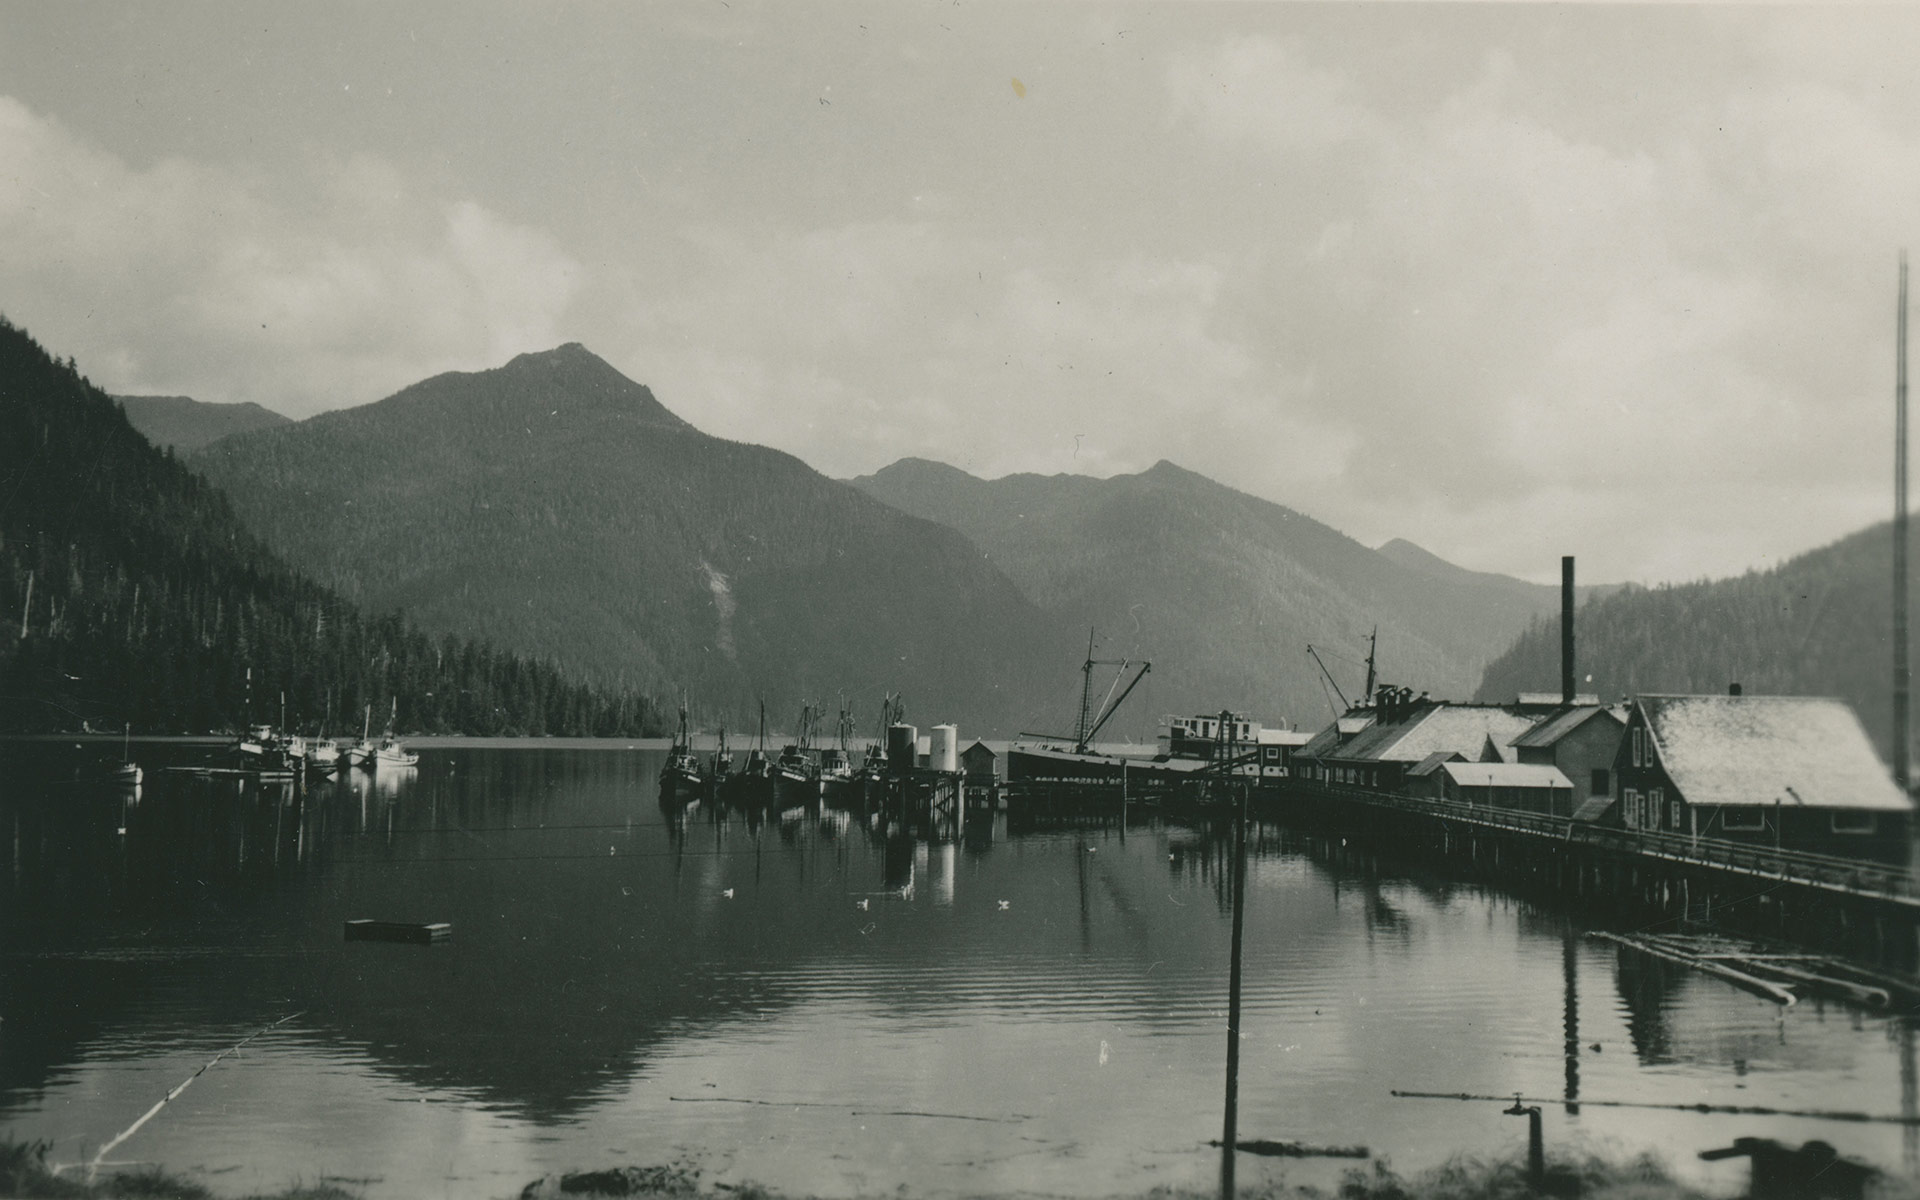 Lagoon Bay Cannery dock with mountains in the background.